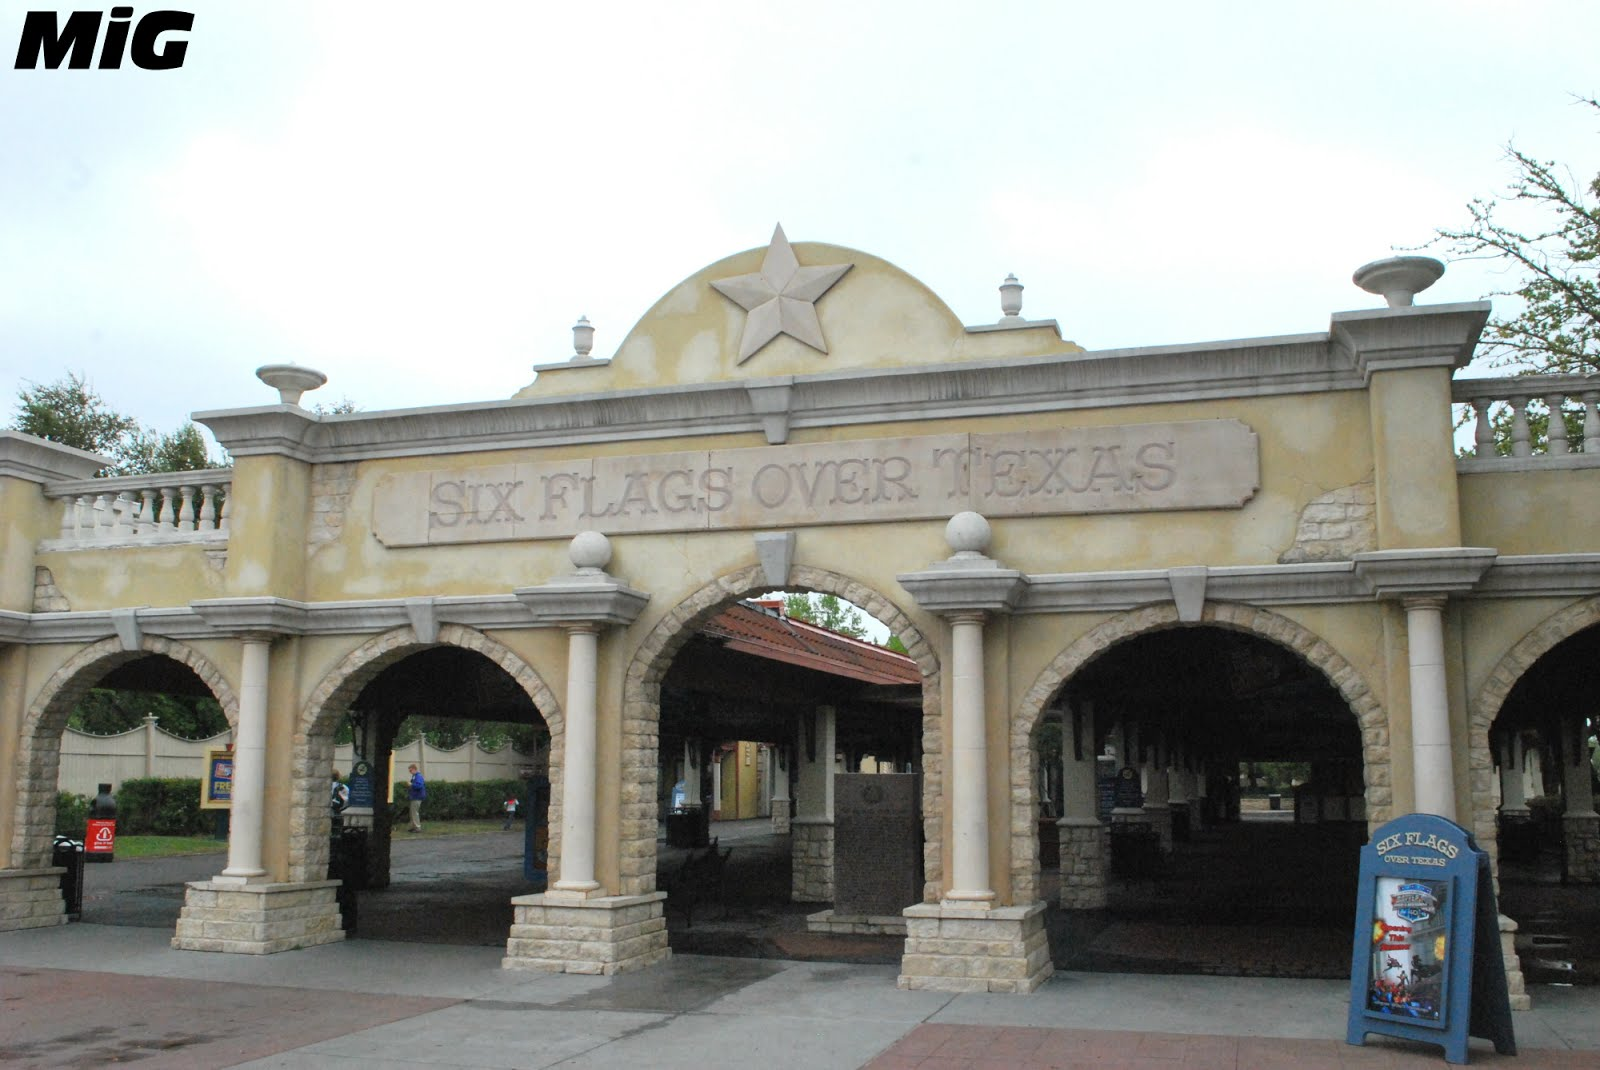 MidwestInfoGuide: Six Flags over Texas